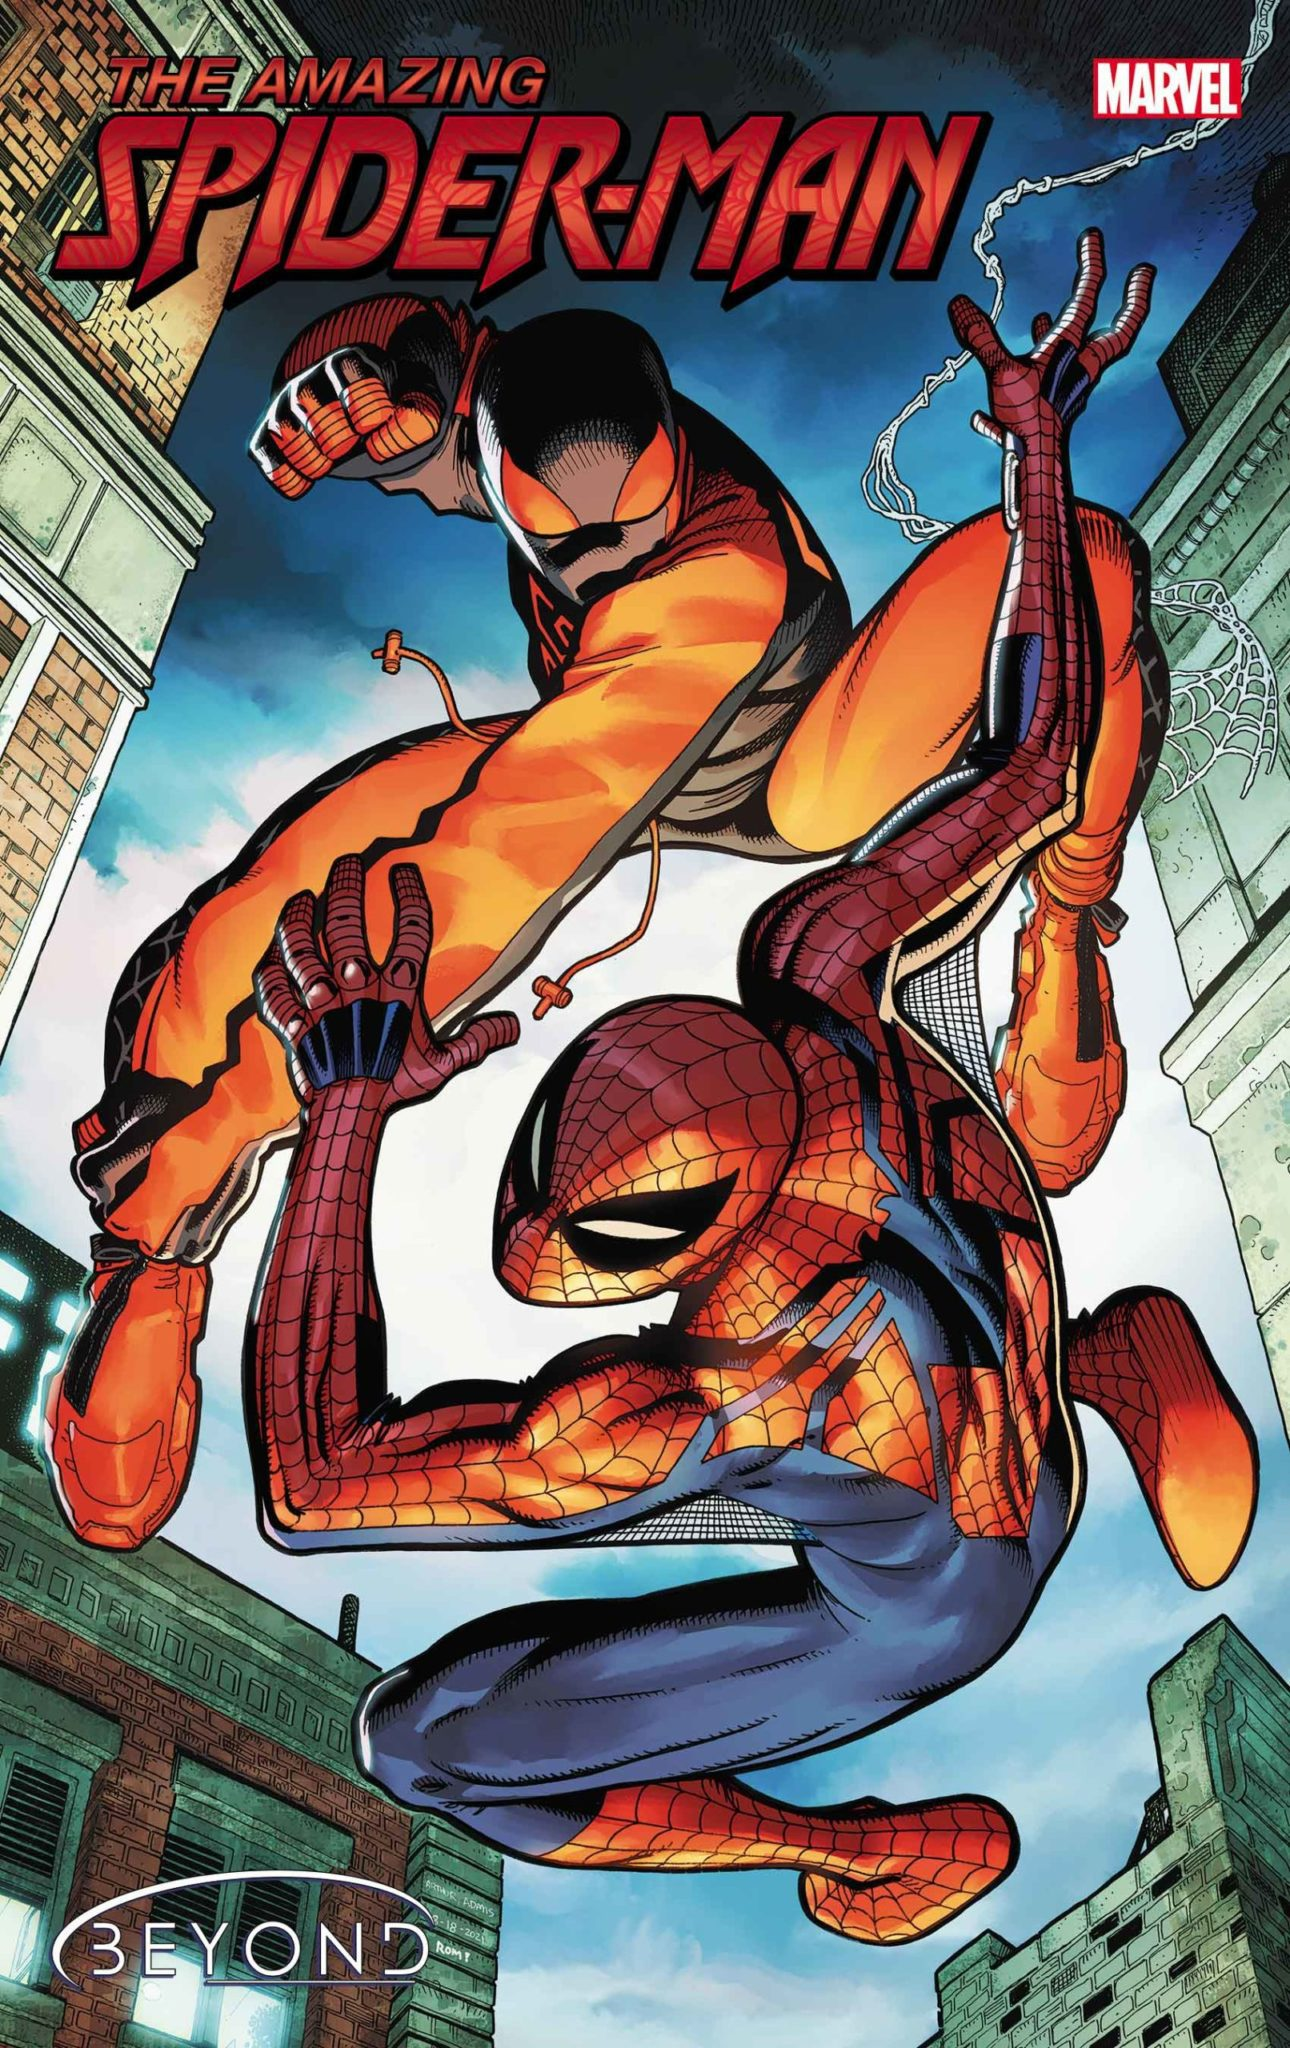 Spider-Man #81 cover